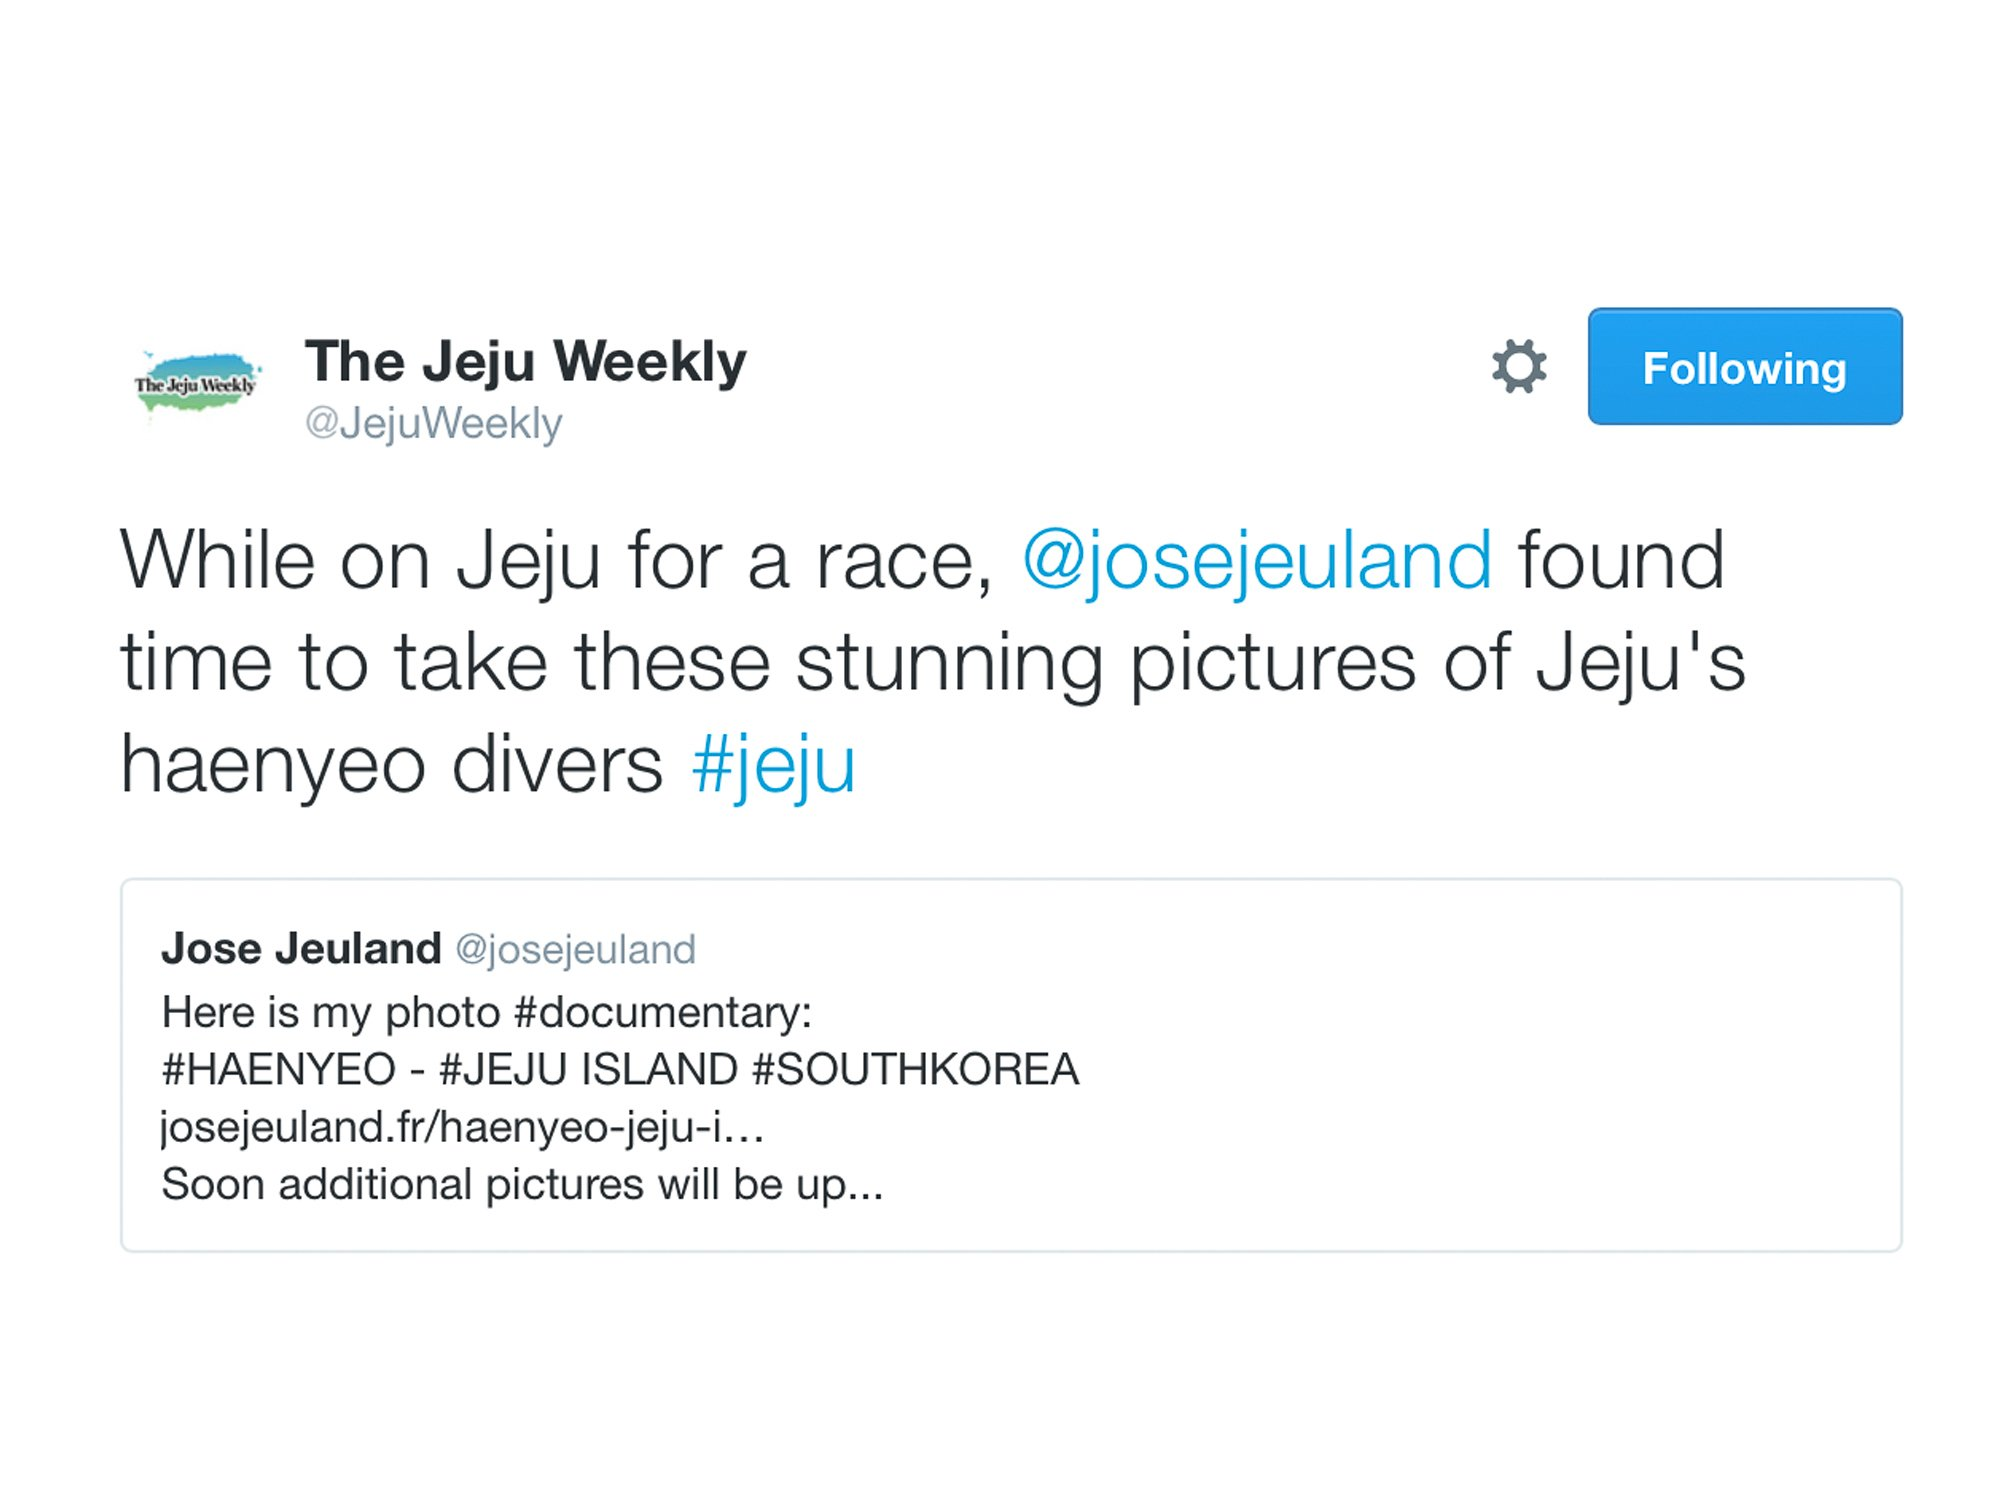 Jose Jeuland The Jeju Weekly Twitter haenyeo photographer